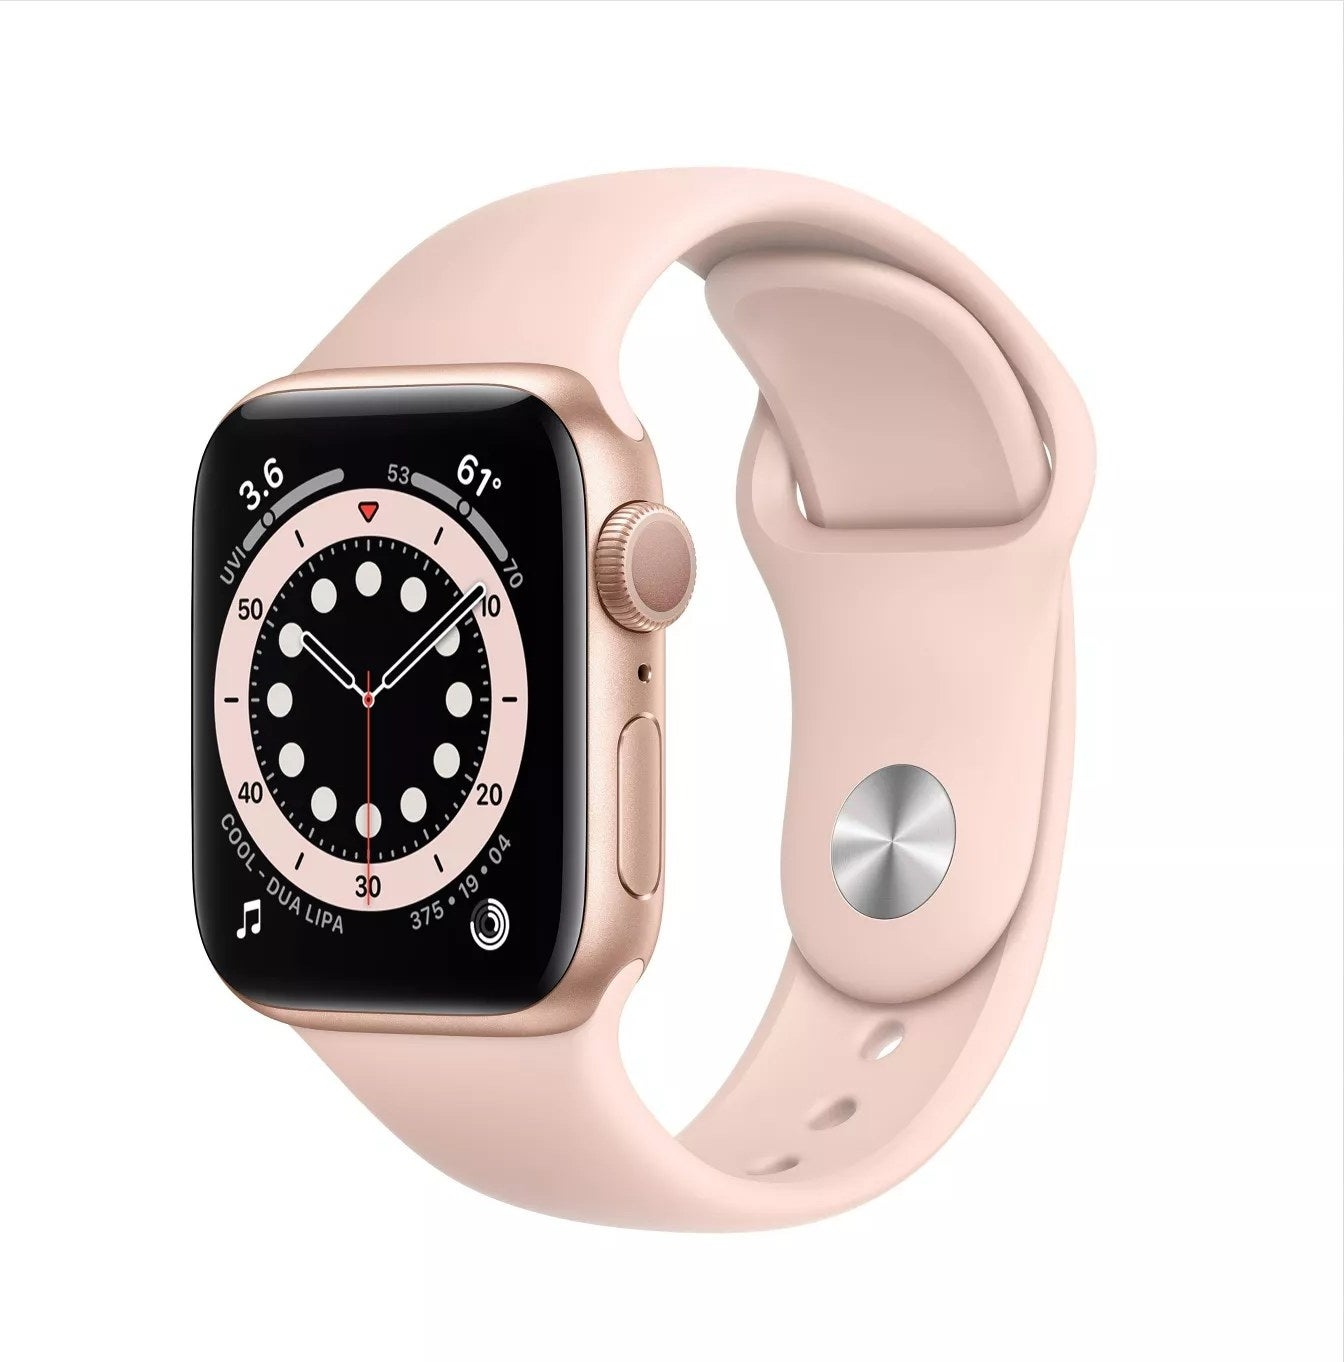 The pink Apple Watch with a touchscreen and matching strap